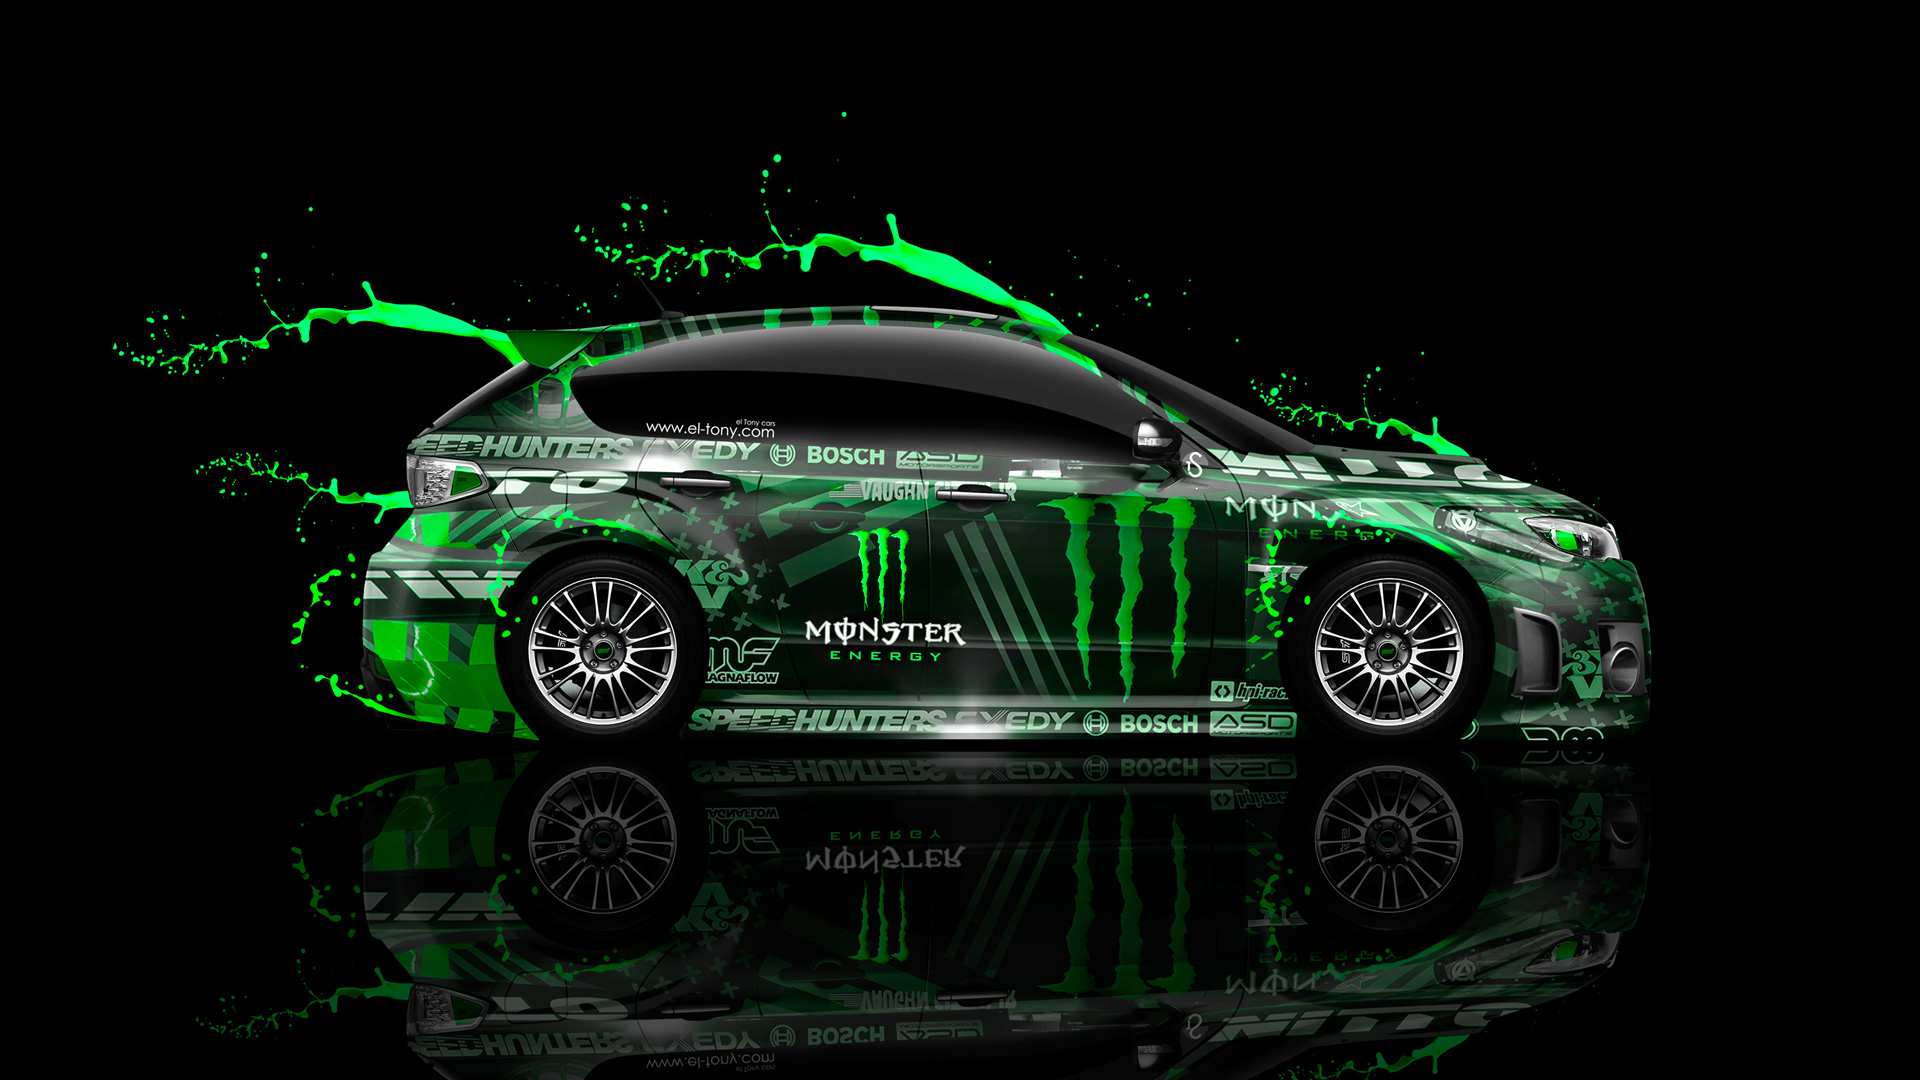 Monster Energy Live Wallpaper The Wallpaper